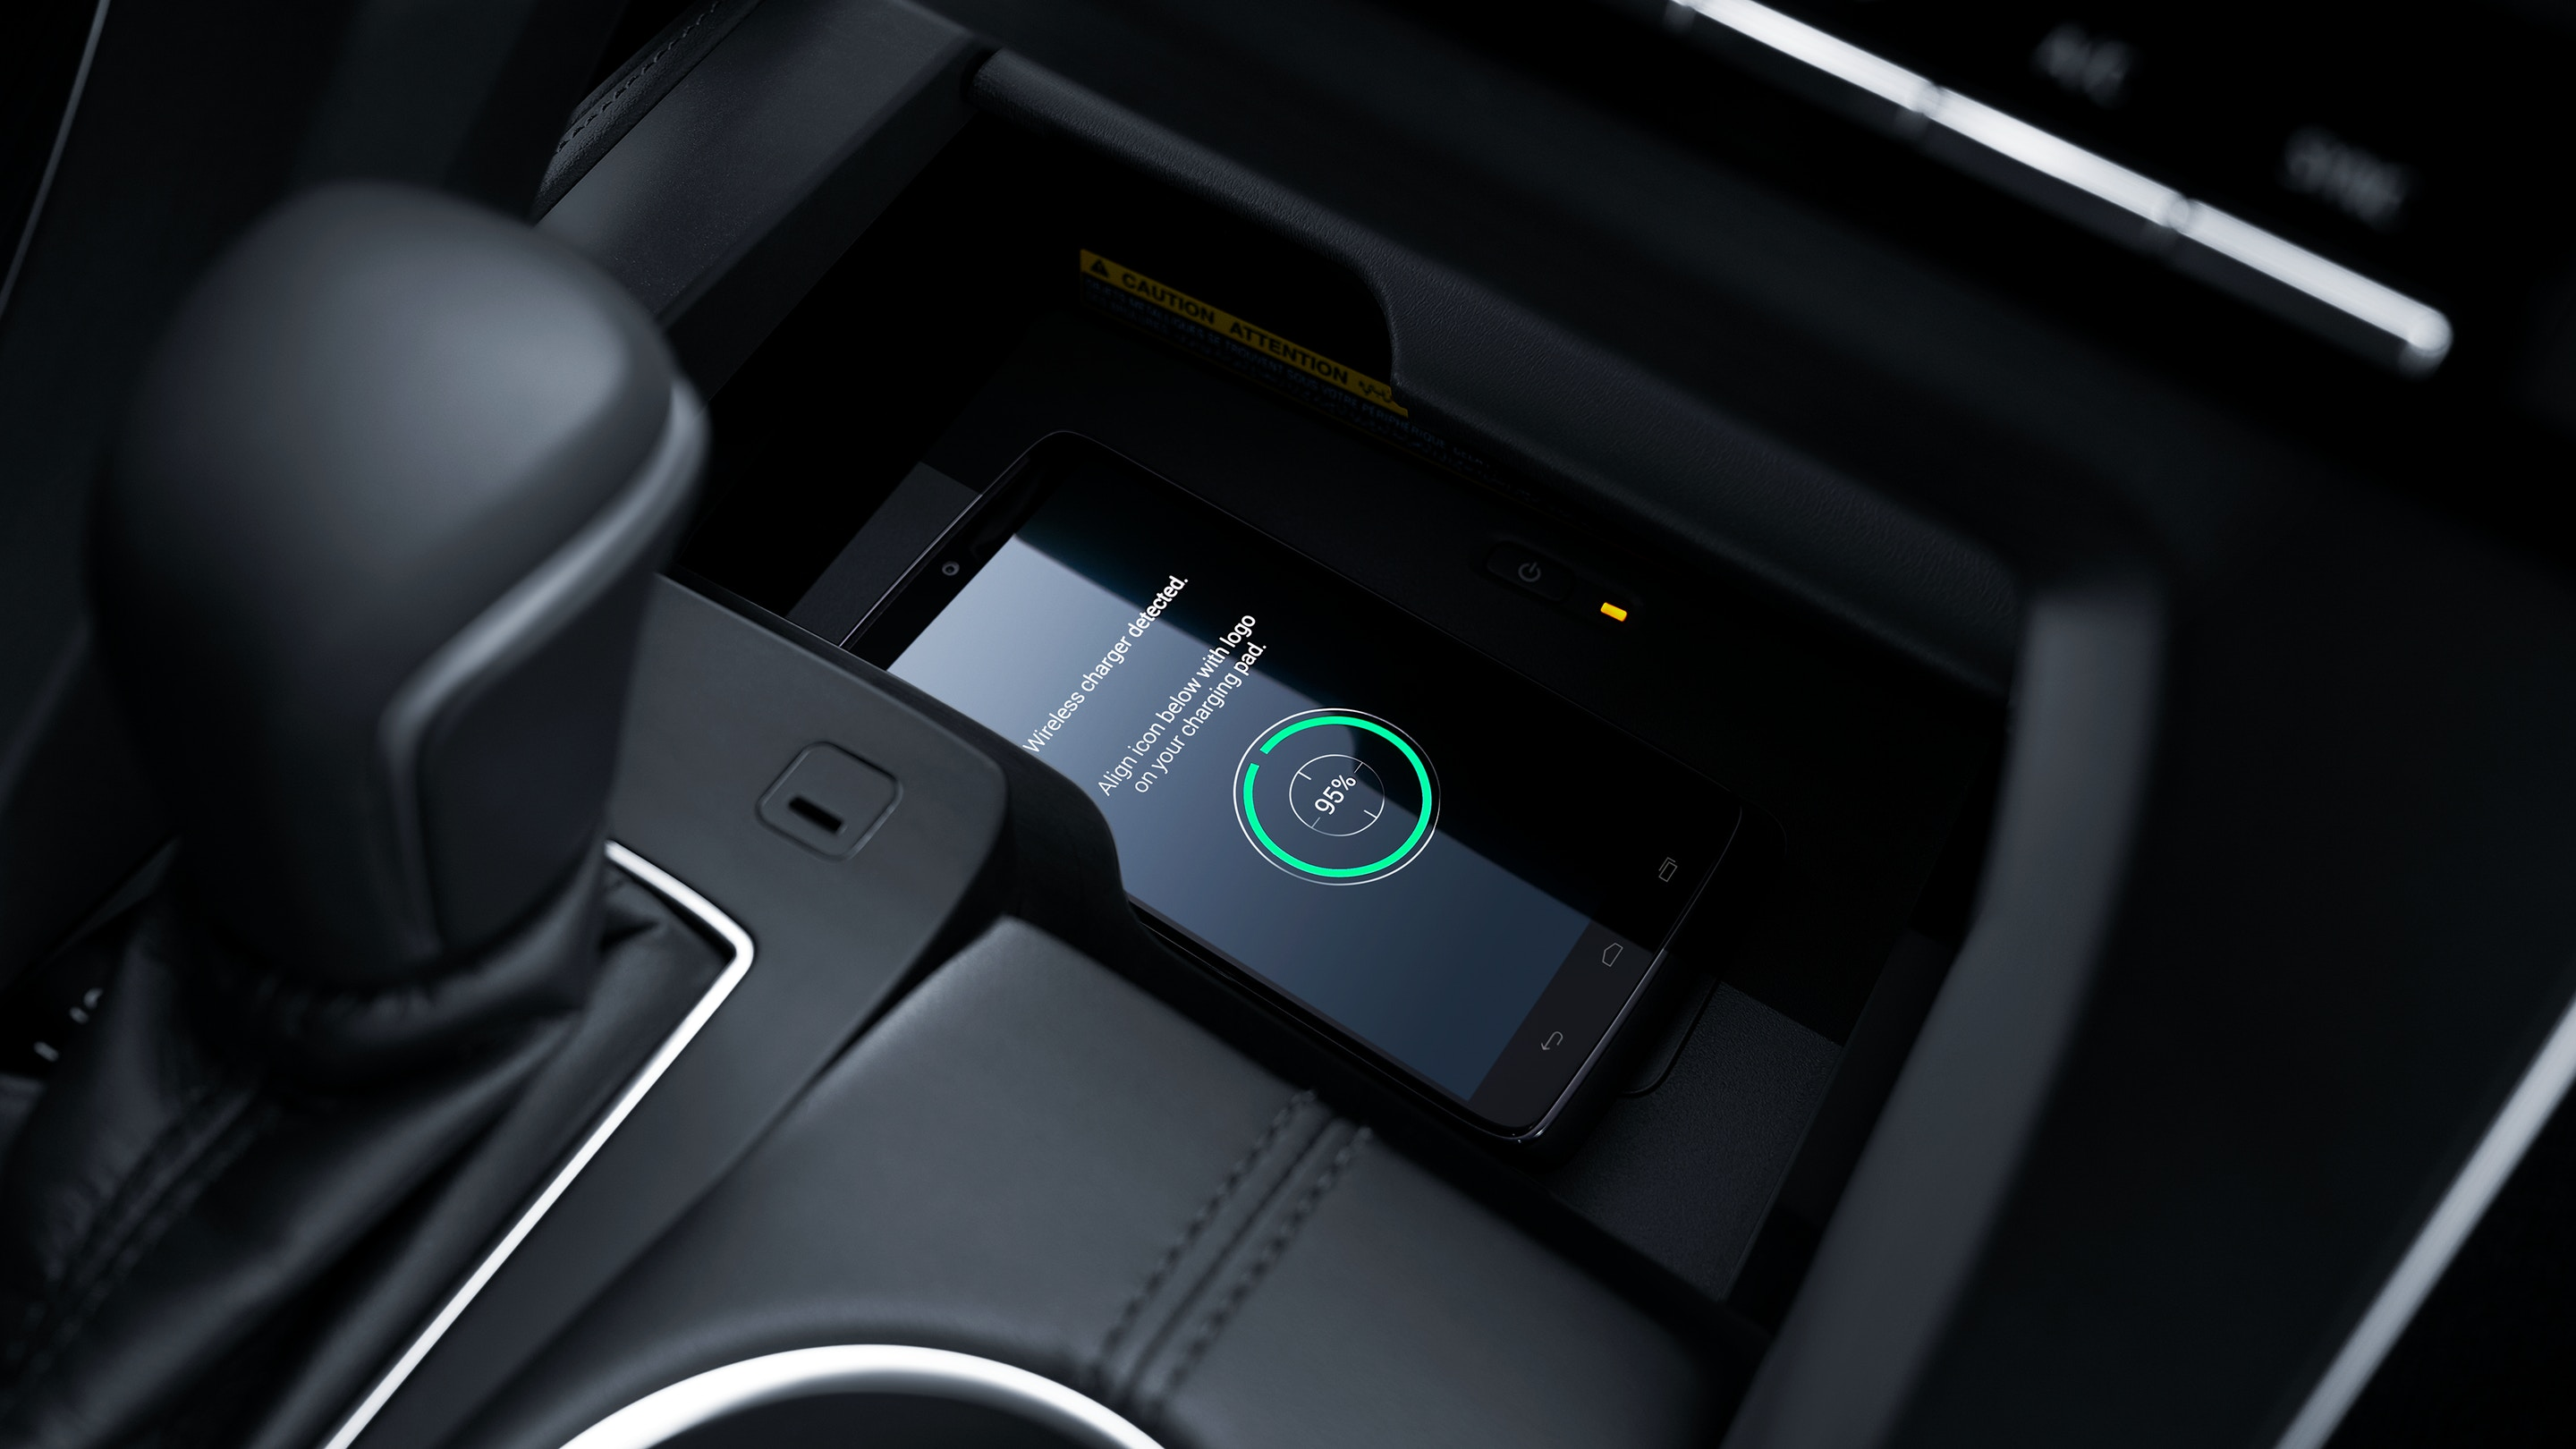 2019 Toyota Avalon's Wireless Charger